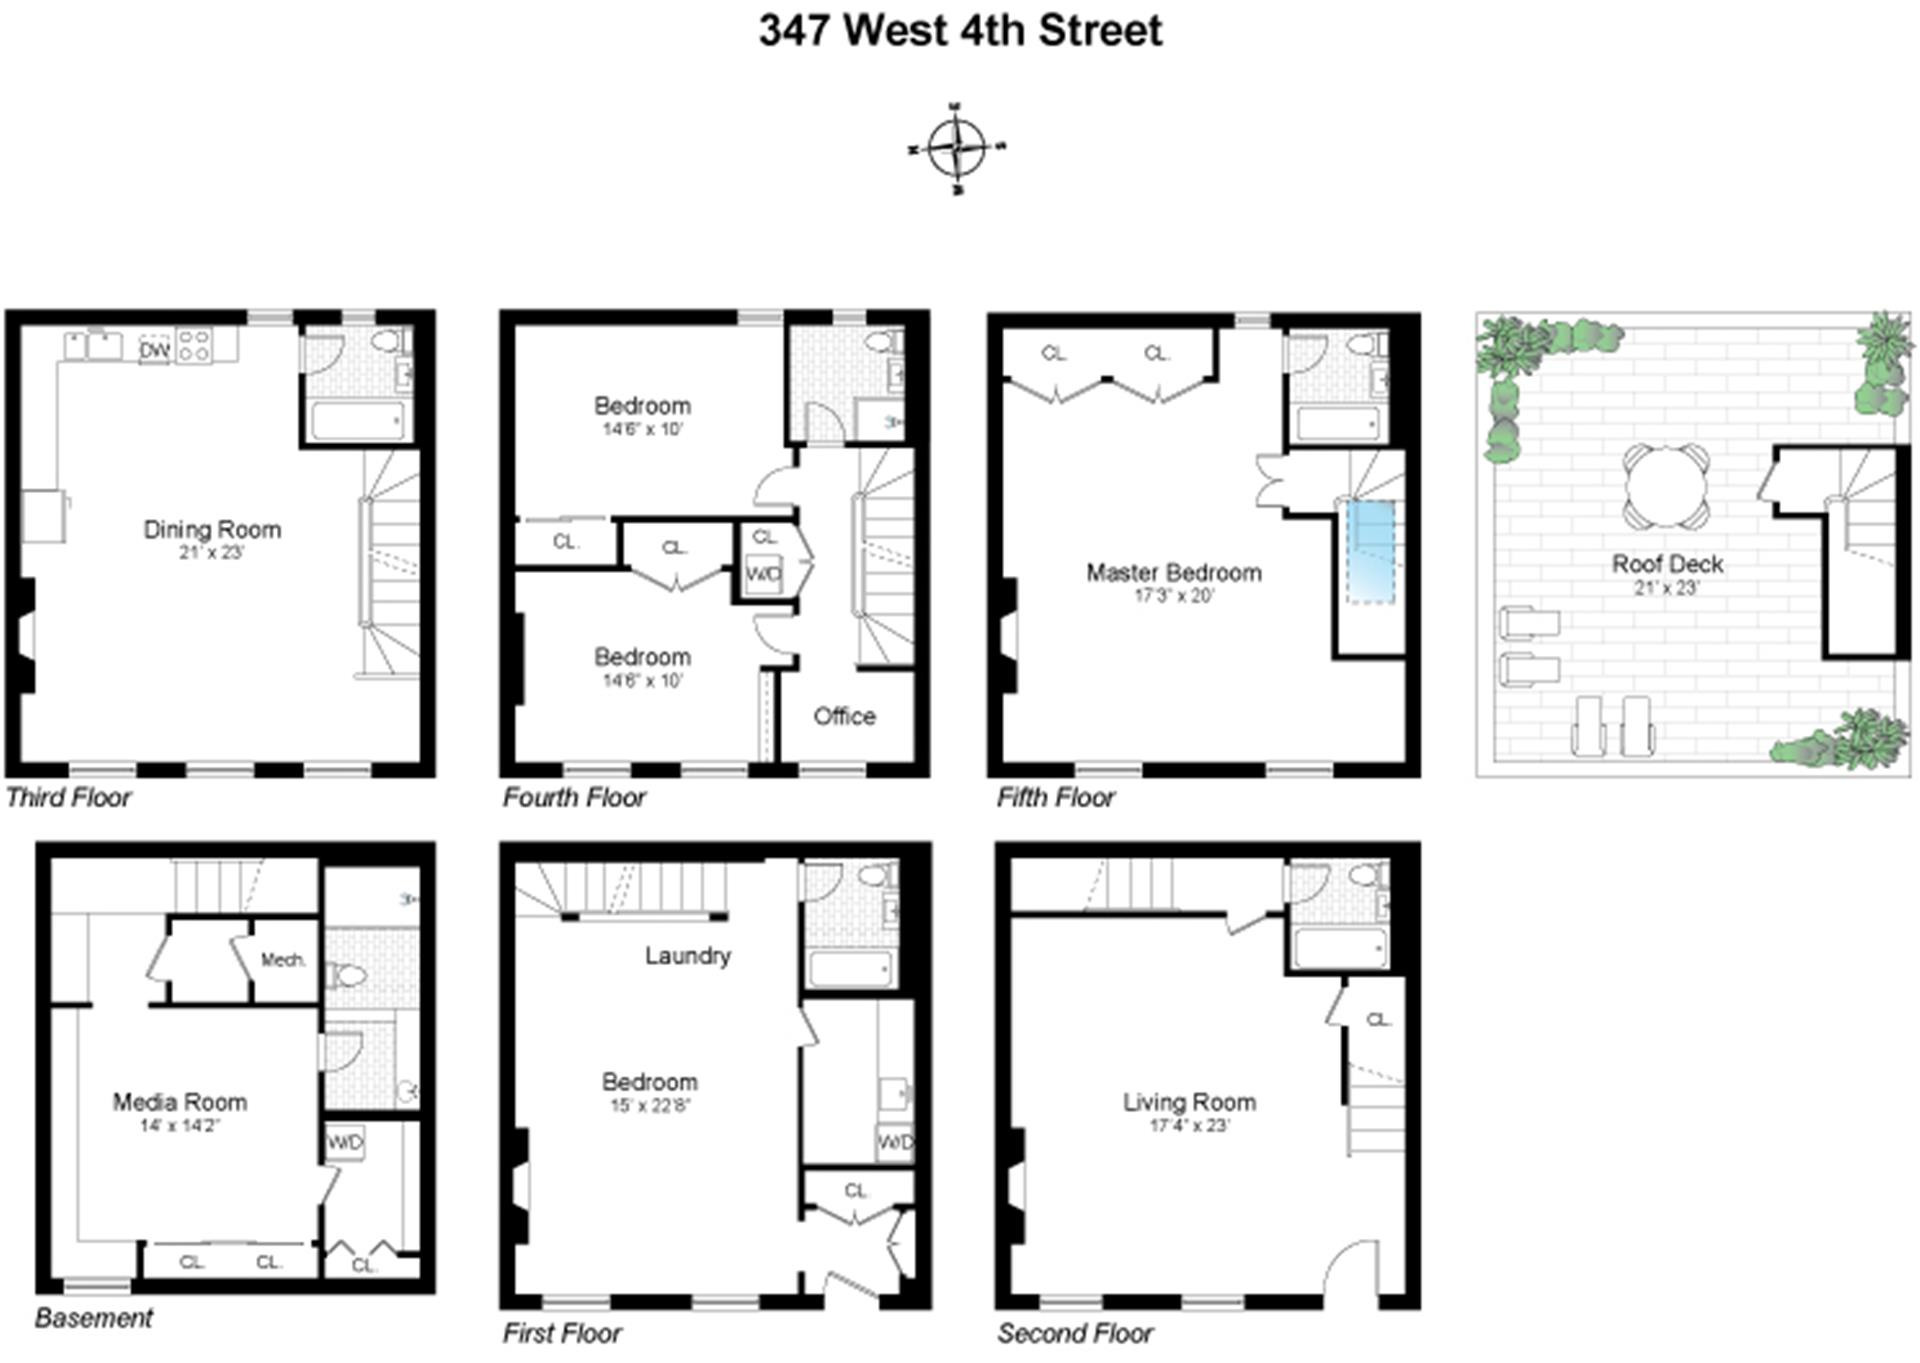 Floor plan of 347 West 4th St - West Village - Meatpacking District, New York